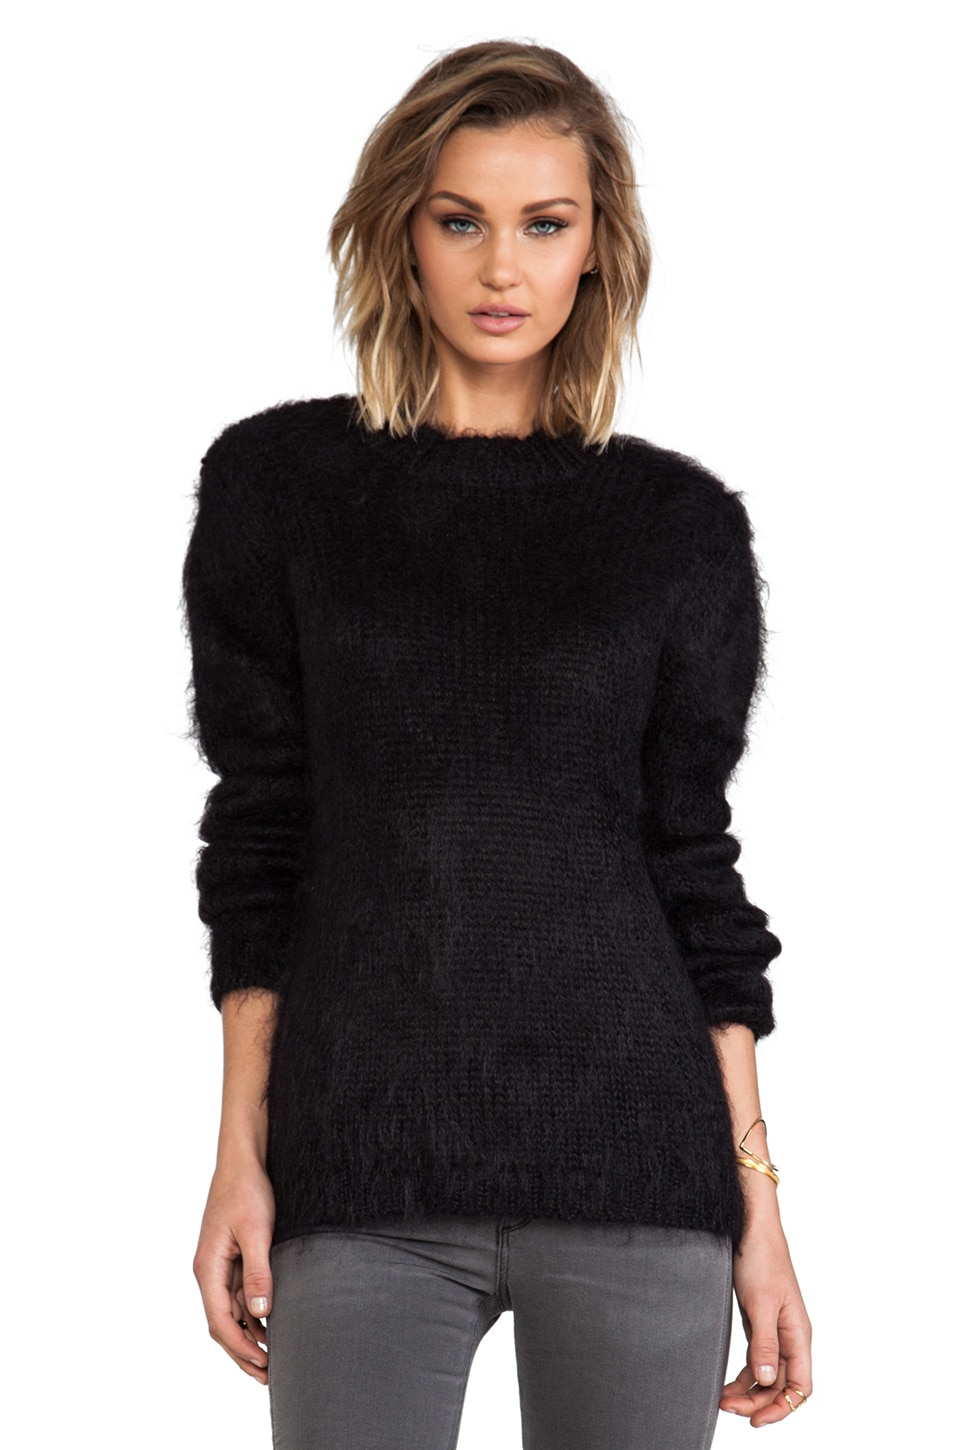 McQ Alexander McQueen Degrade Mohair Knit Sweater in Black